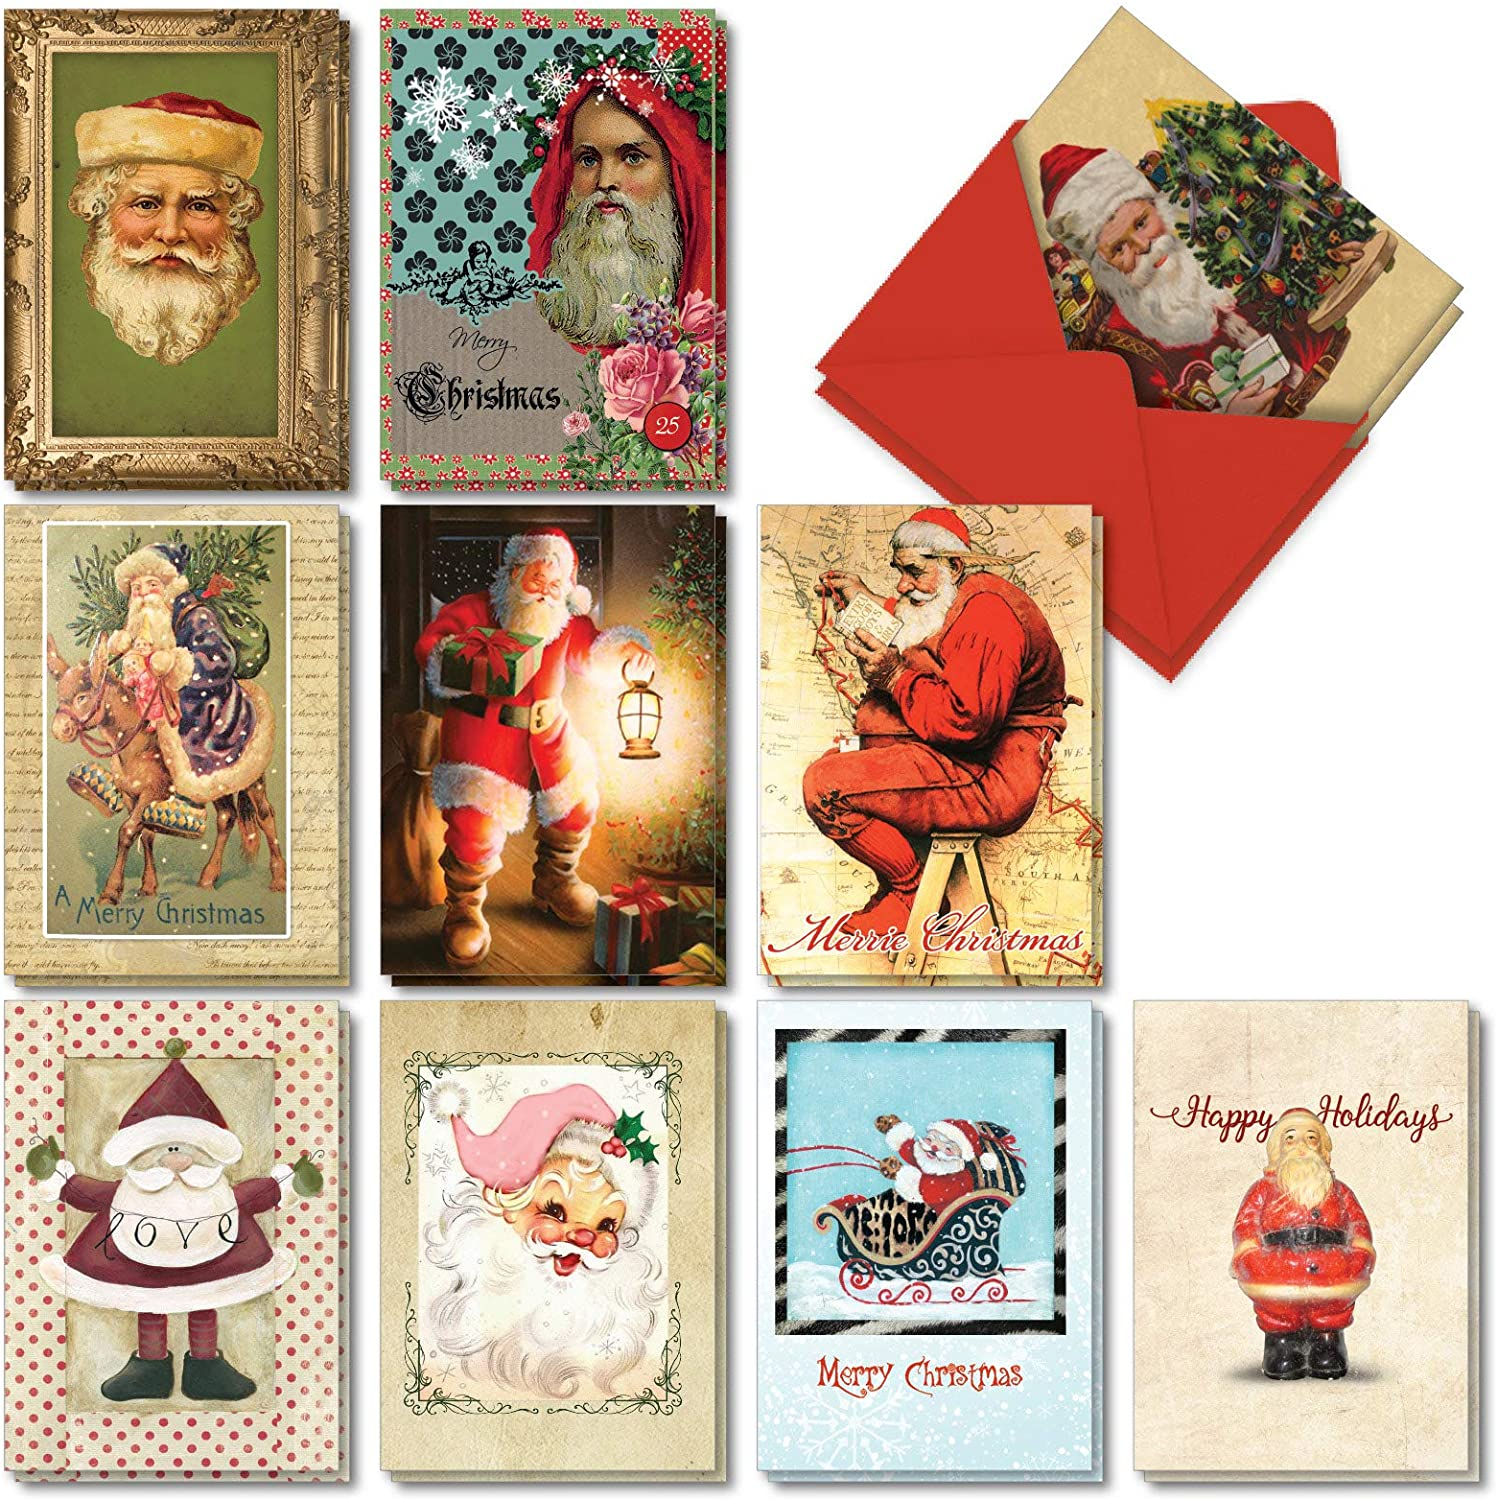 The Best Card Company - 20 Merry Christmas Cards Bulk (10 Designs, 2 Each) - Boxed Notecard Set, Fun Artistic Xmas Greetings - Stylish Santas AC7161XSG-B2x10